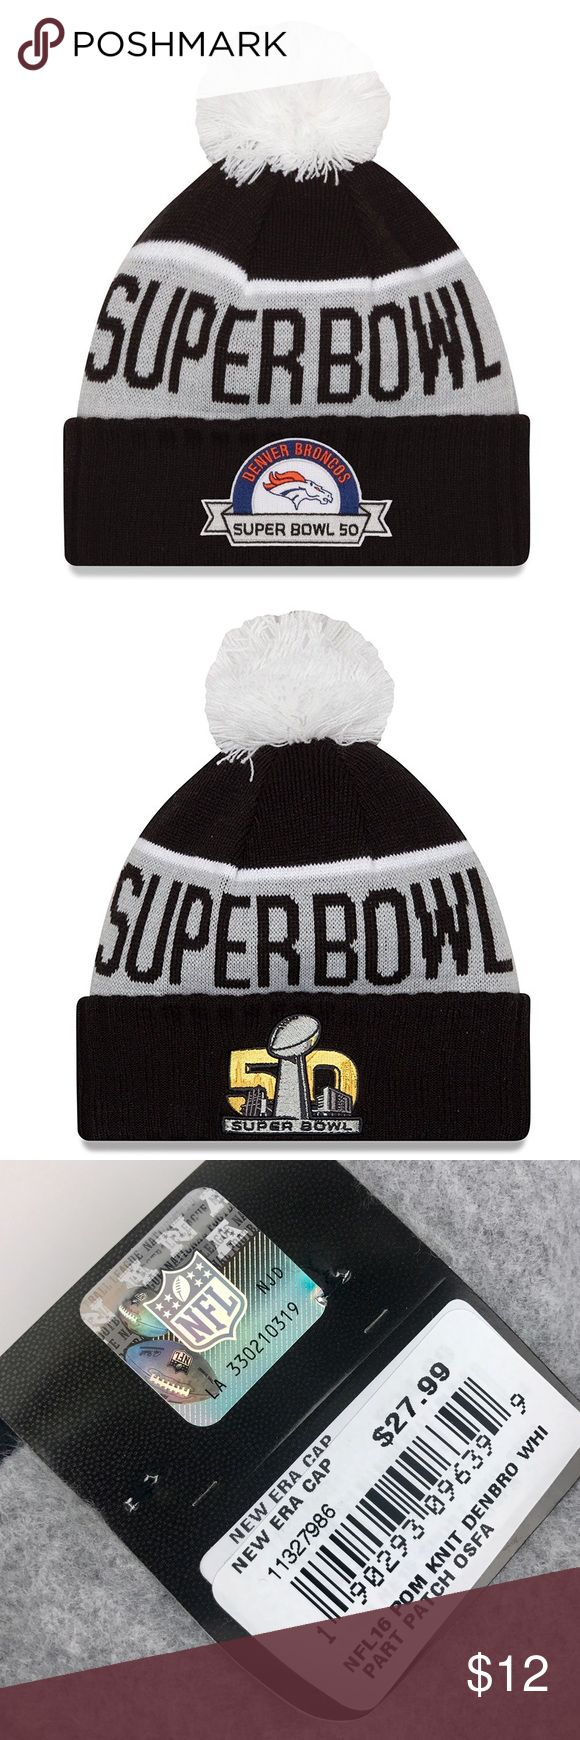 Denver Broncos Super Bowl 50 Beanie Brand New Officially Licensed with tags. This New Era Broncos Super Bowl 50 Participation Knit Beanie features the Super Bowl 50 Logo on one side and the Broncos Logo on the other. Fluffy white pom pom on top and fully lined inside with cozy fleece. 190293096399 New Era Accessories Hats